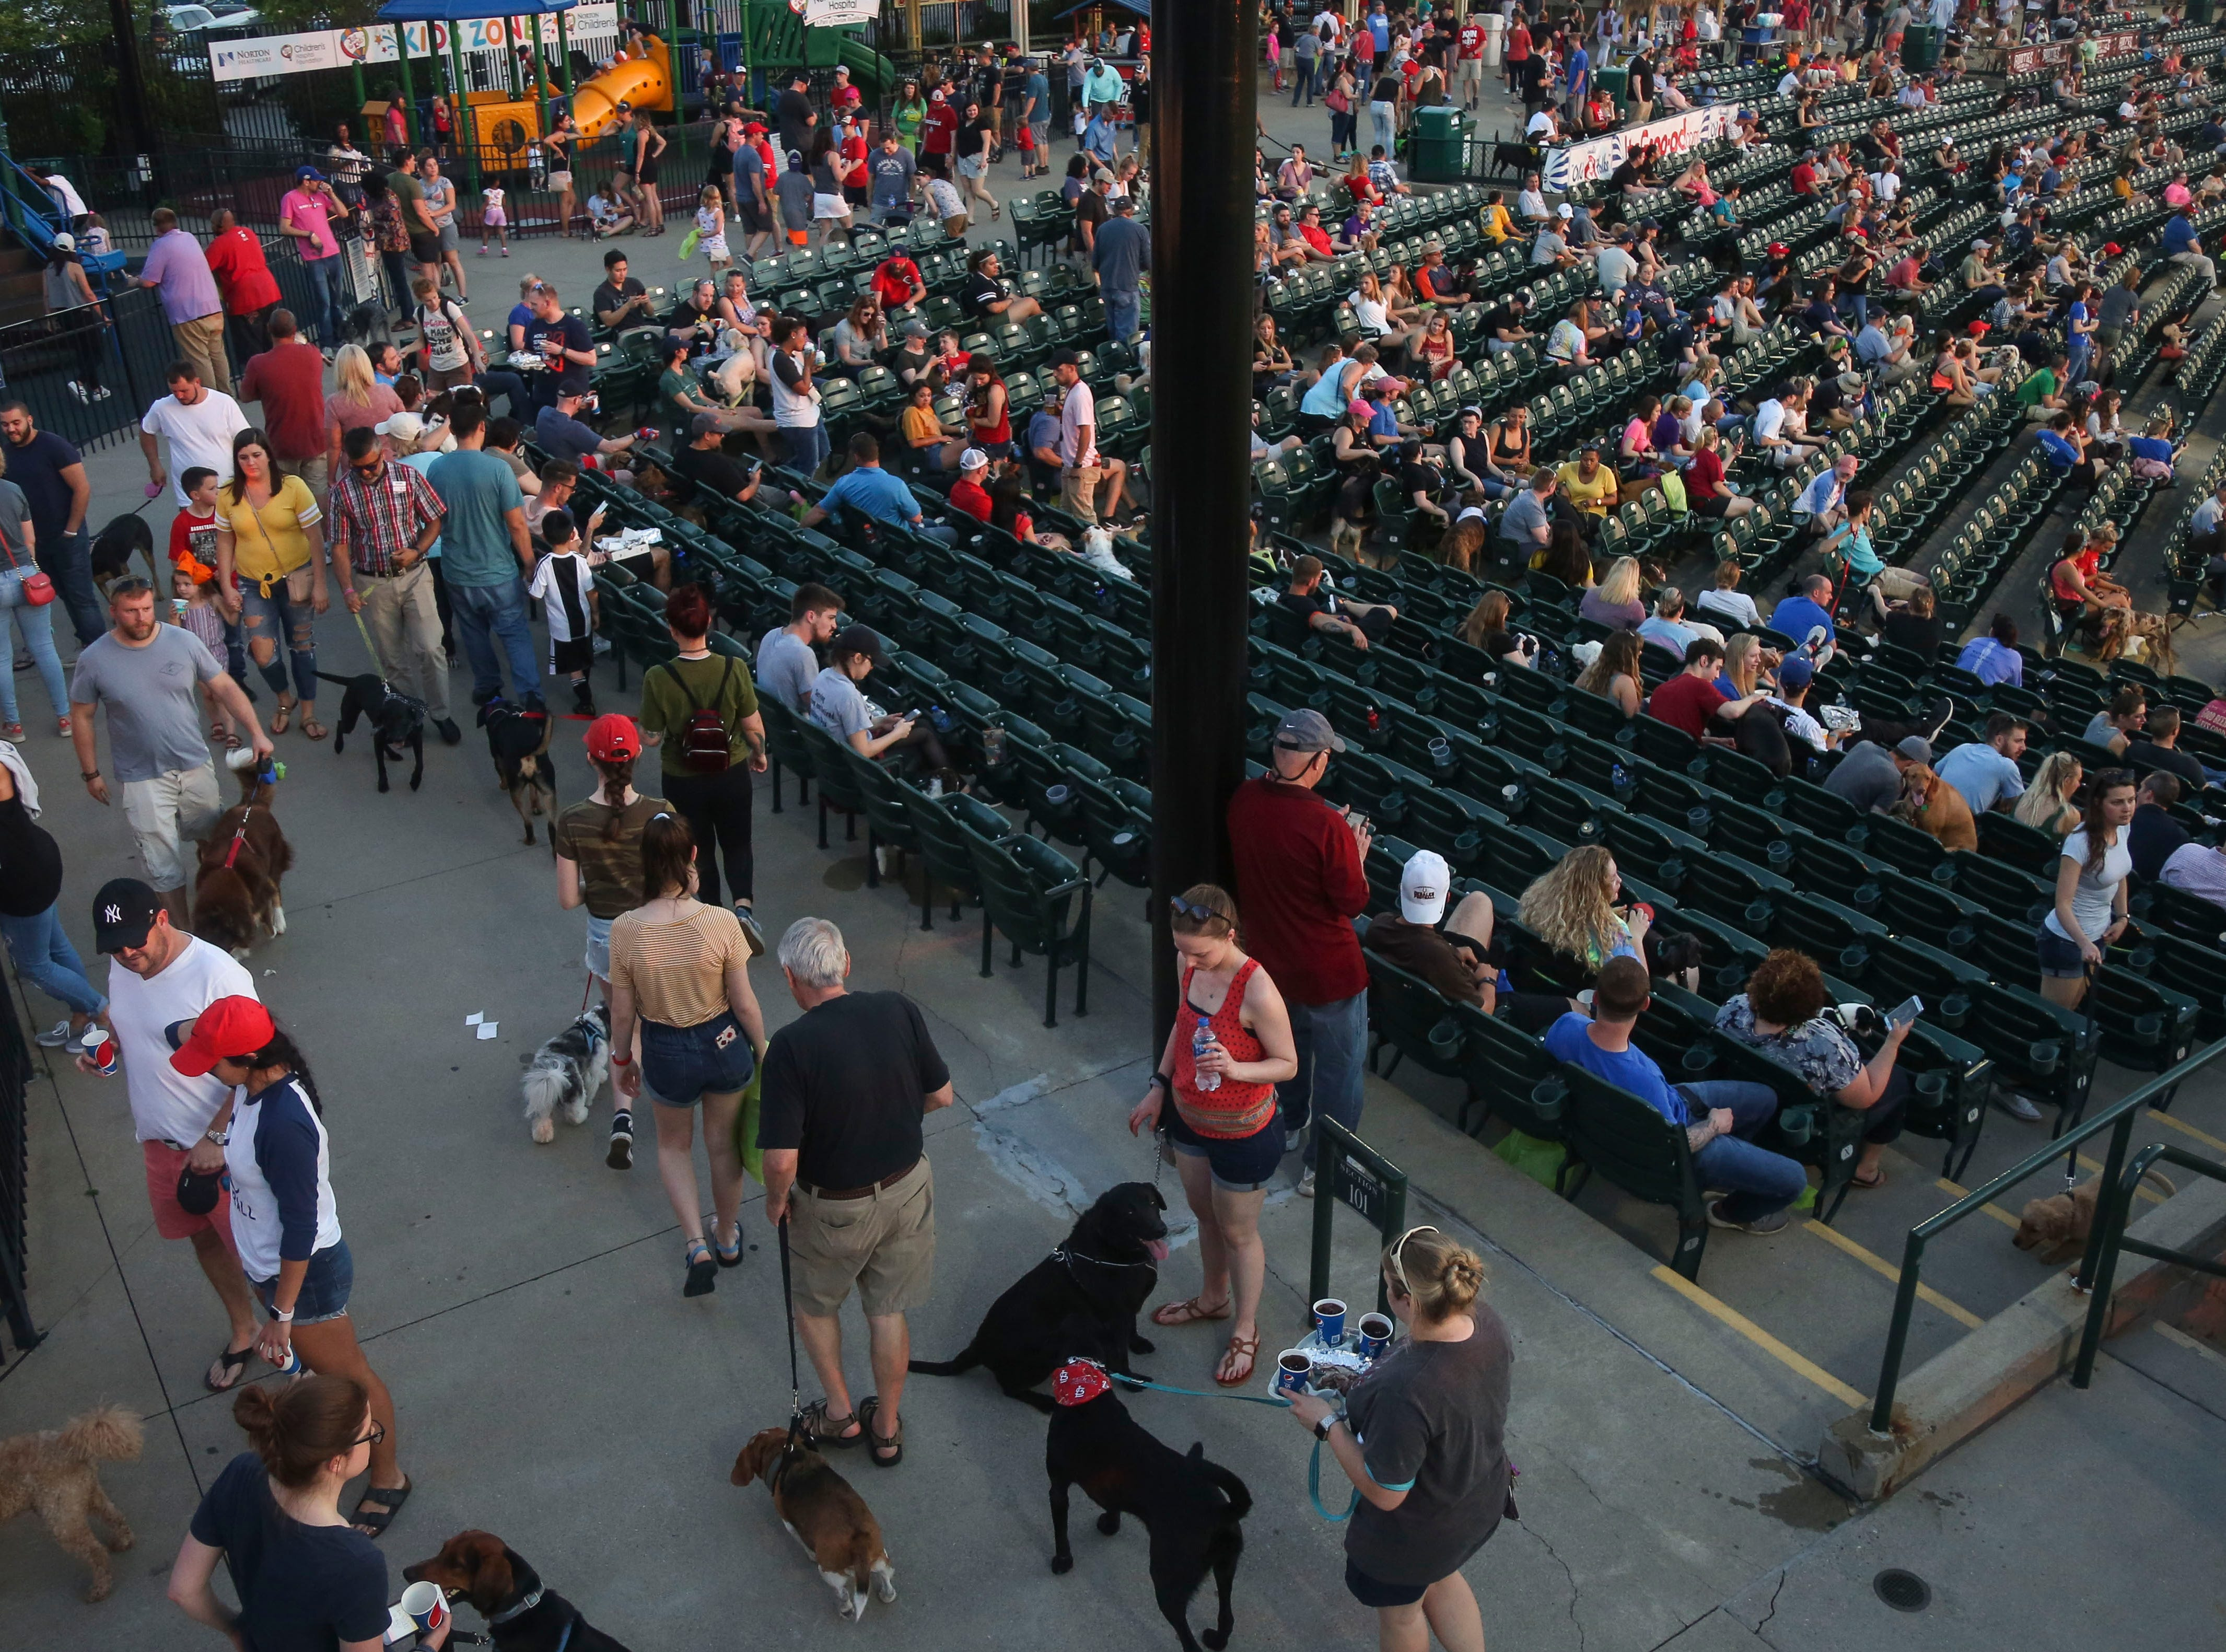 902 dogs showed up to watch the Louisville Bats v. Syracuse Mets game during Dog Day Nights at Louisville Slugger Field in downtown Louisville, Ky. on Tuesday, May 7, 2019.